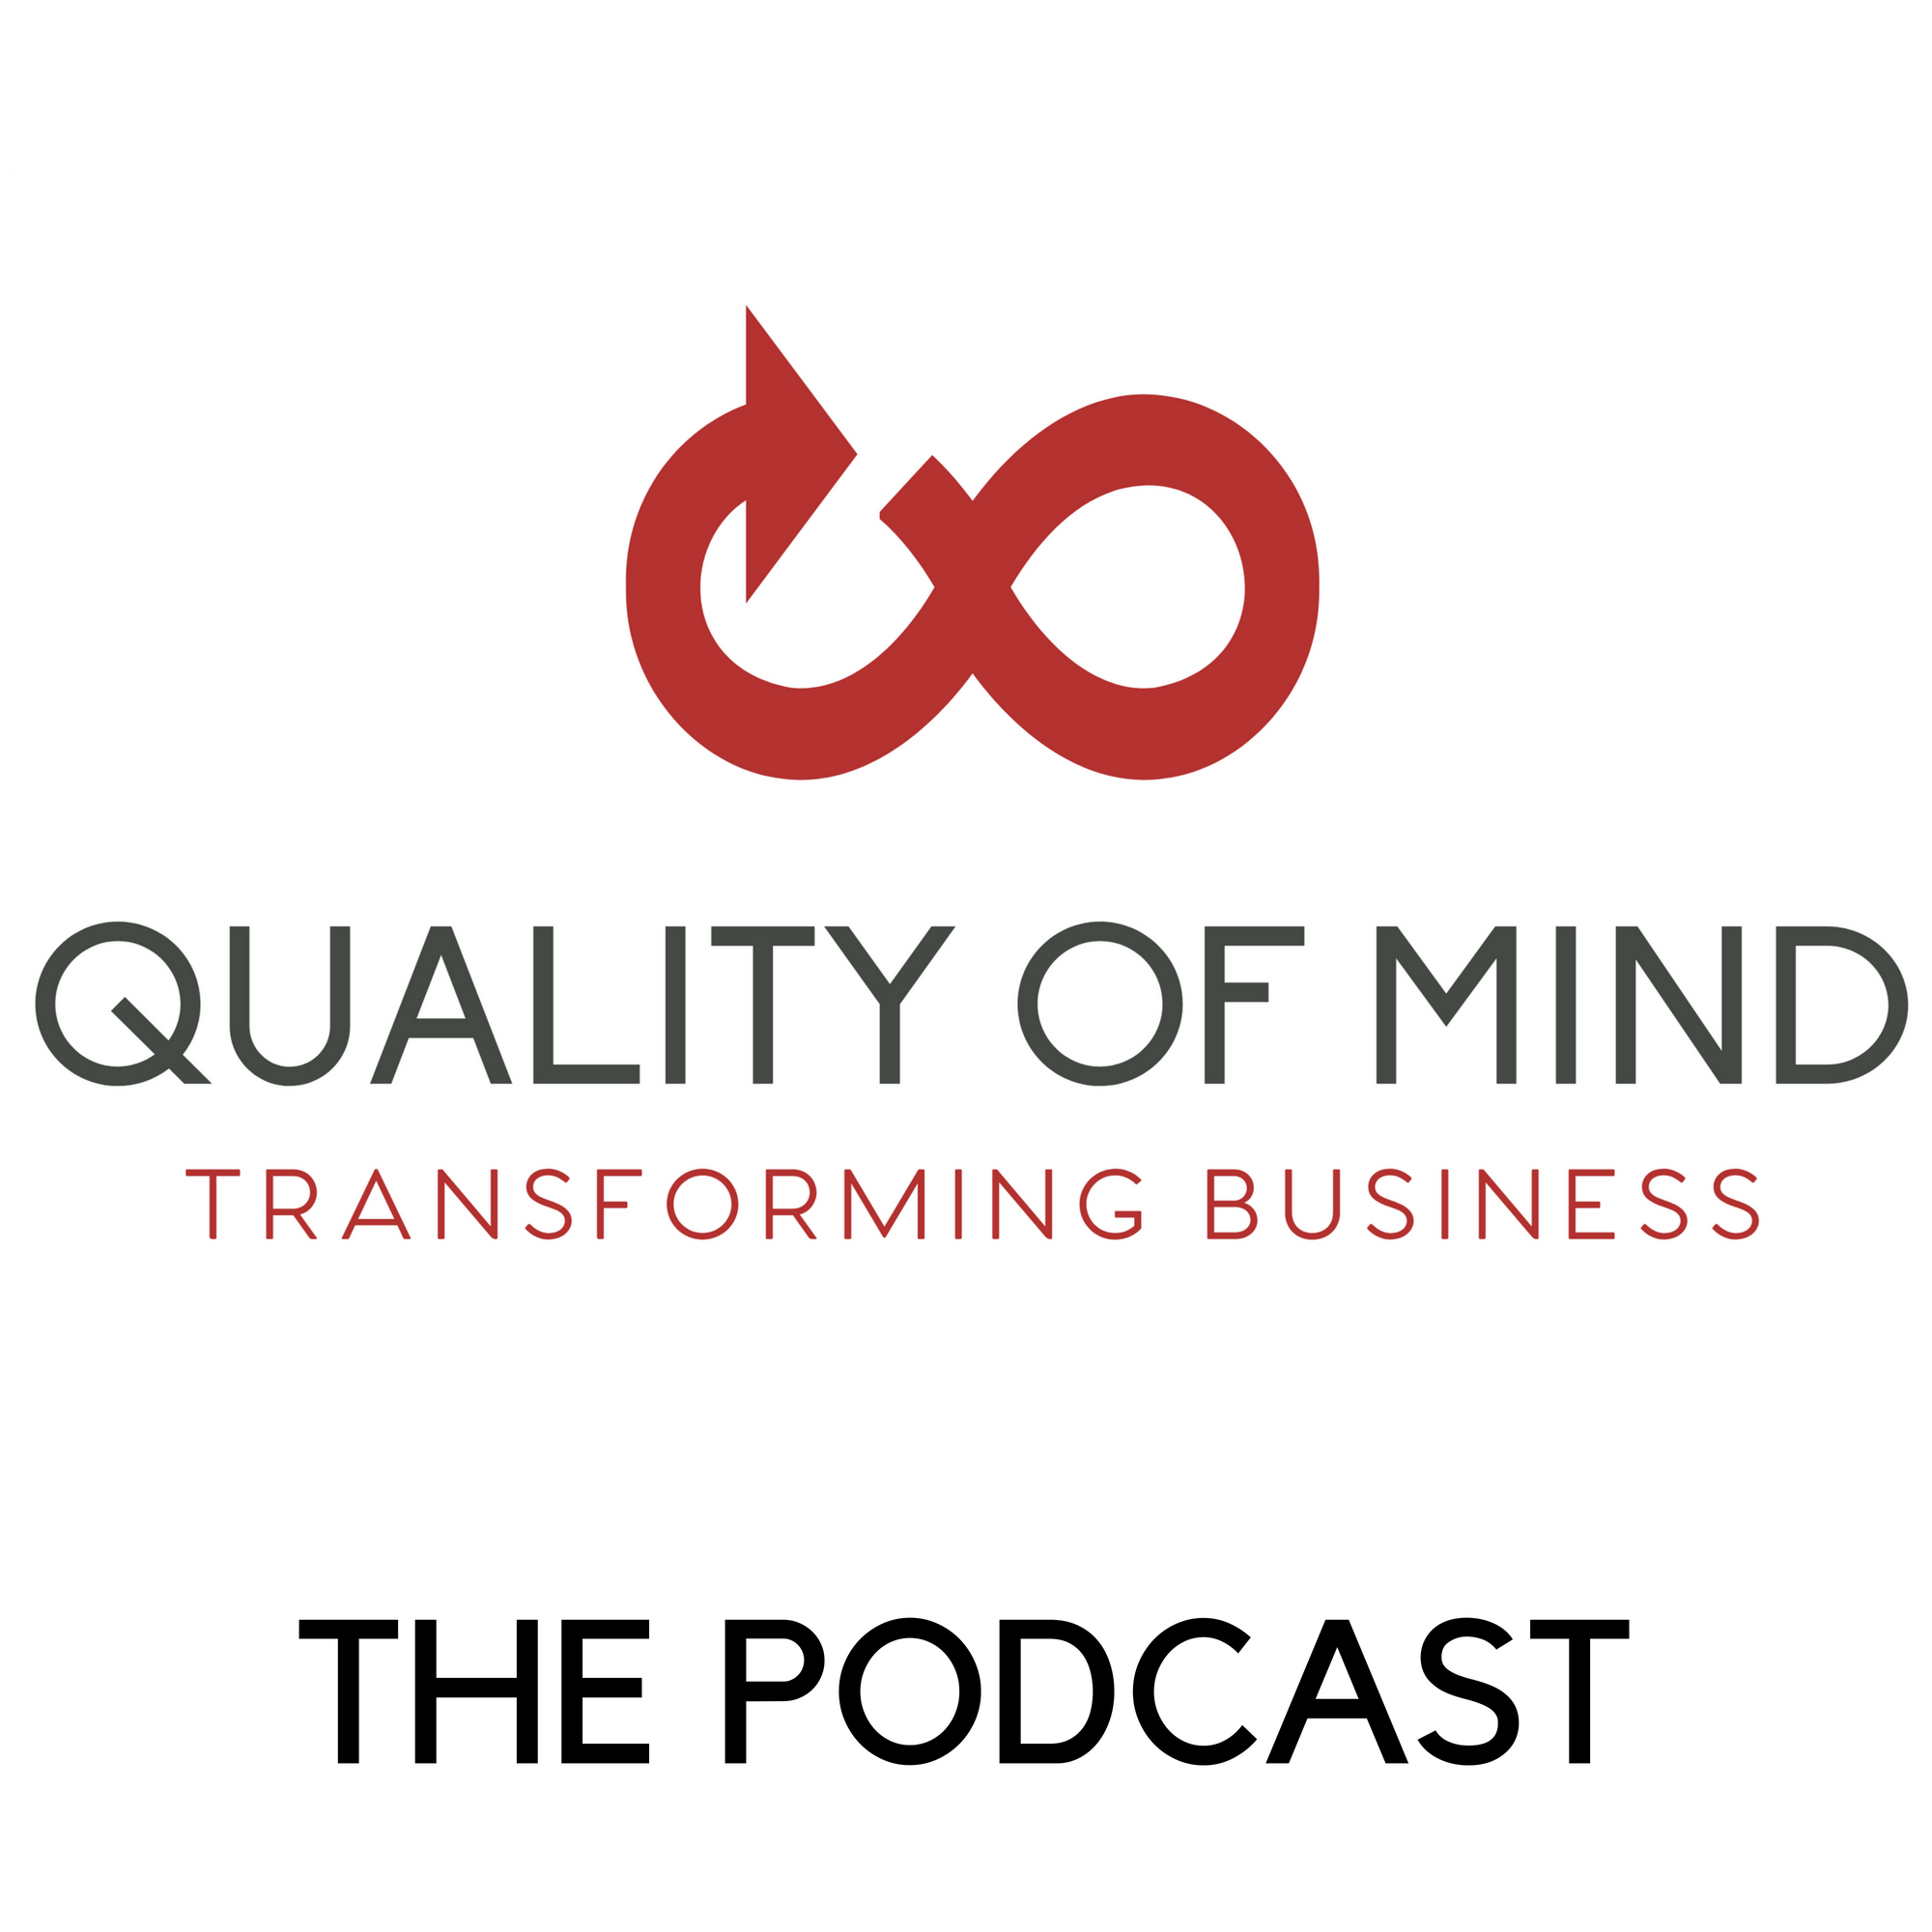 Quality of Mind & Re-balancing humanity with the rise of technology. An interview with a futurist